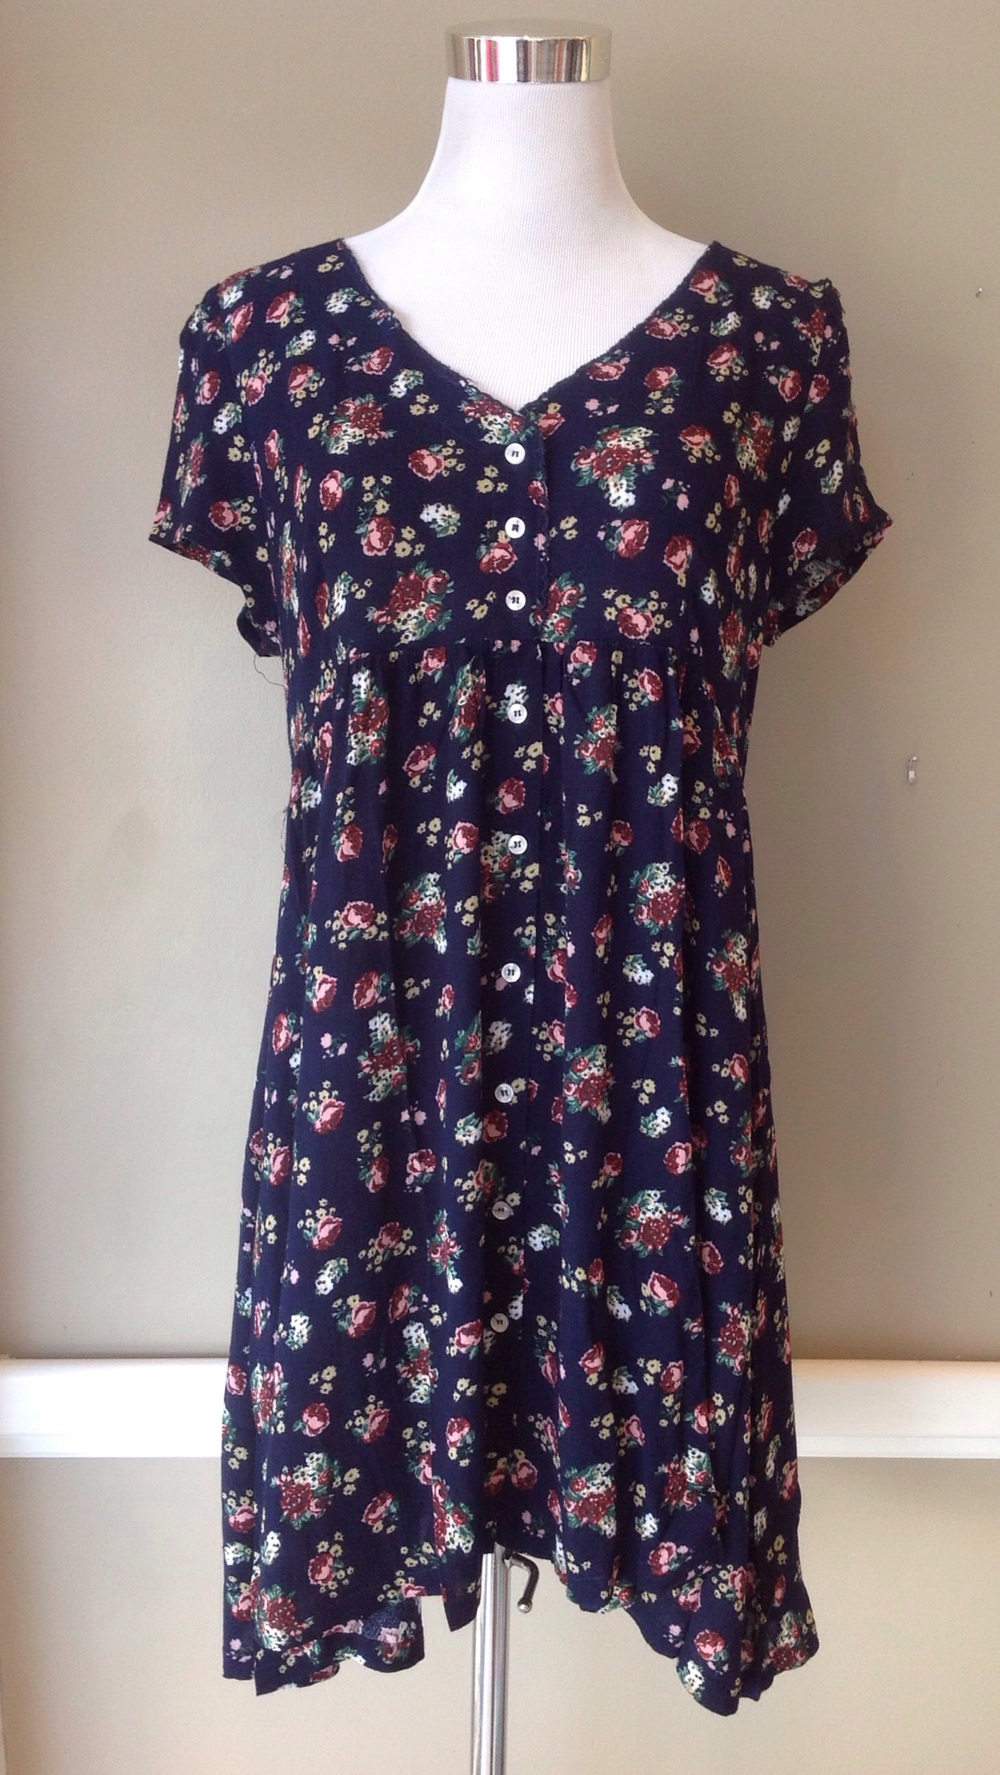 Navy floral print babydoll dress, $38